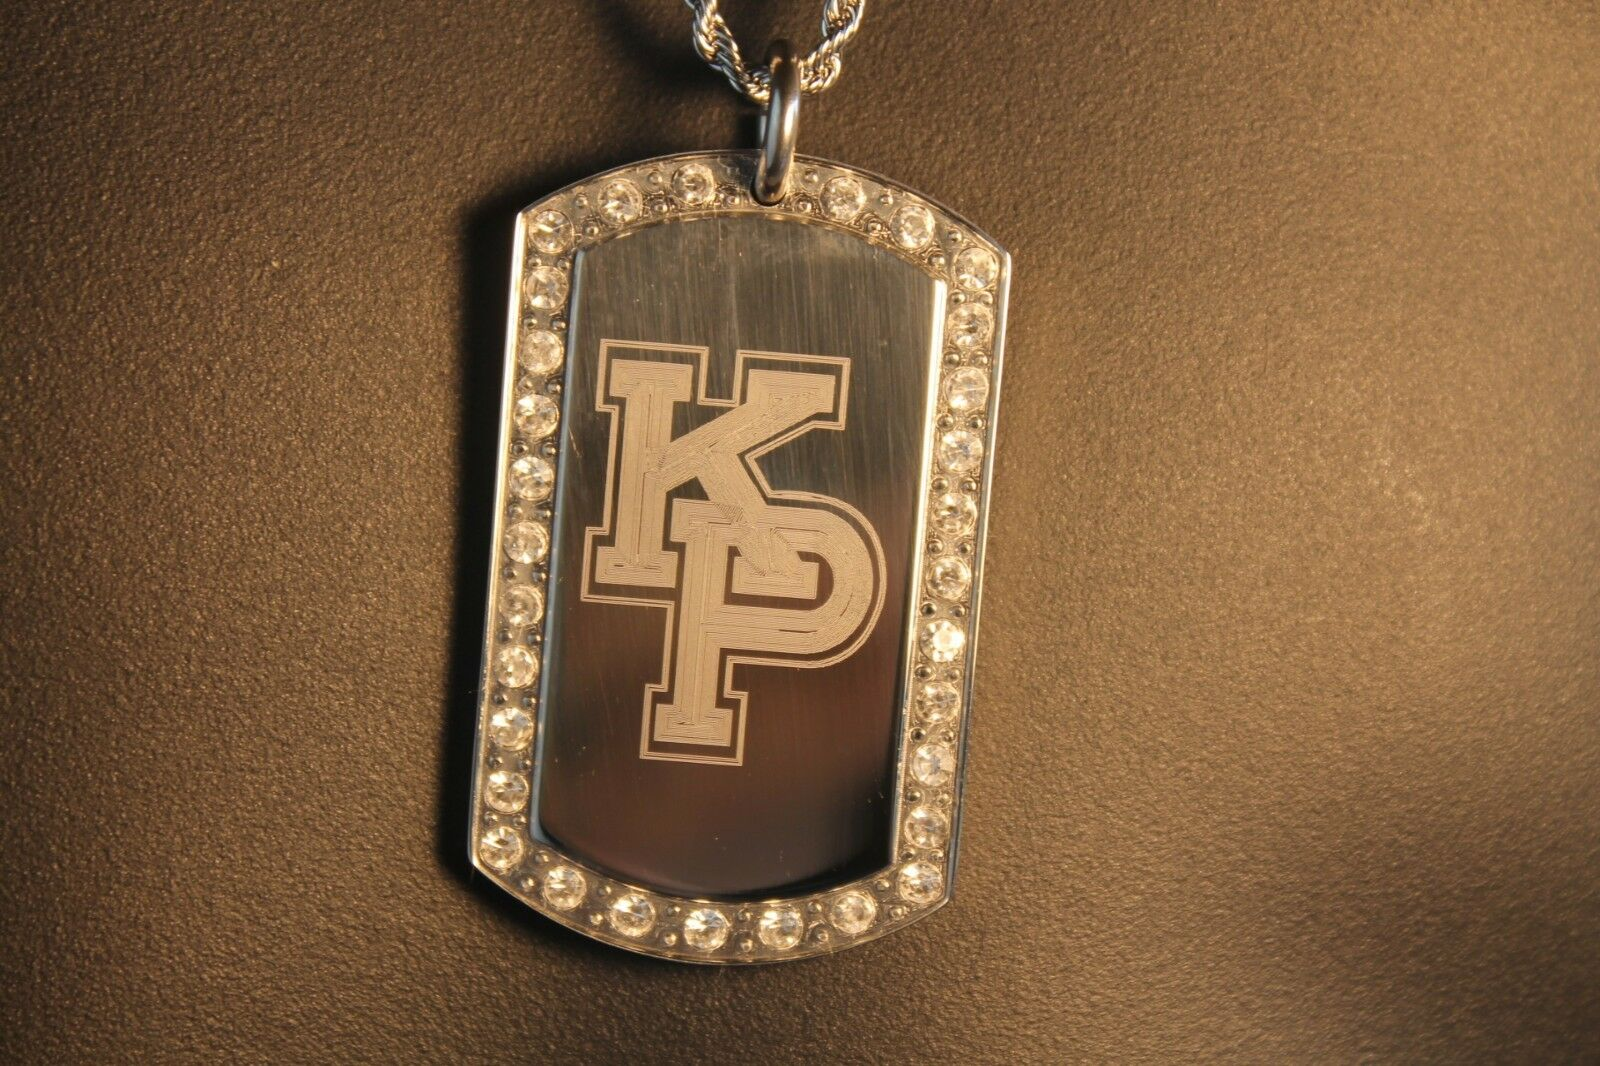 USMMA US MERCHANT MARINE ACADEMY BLING STAINLESS STEEL DOG TAG KP KINGS POINT